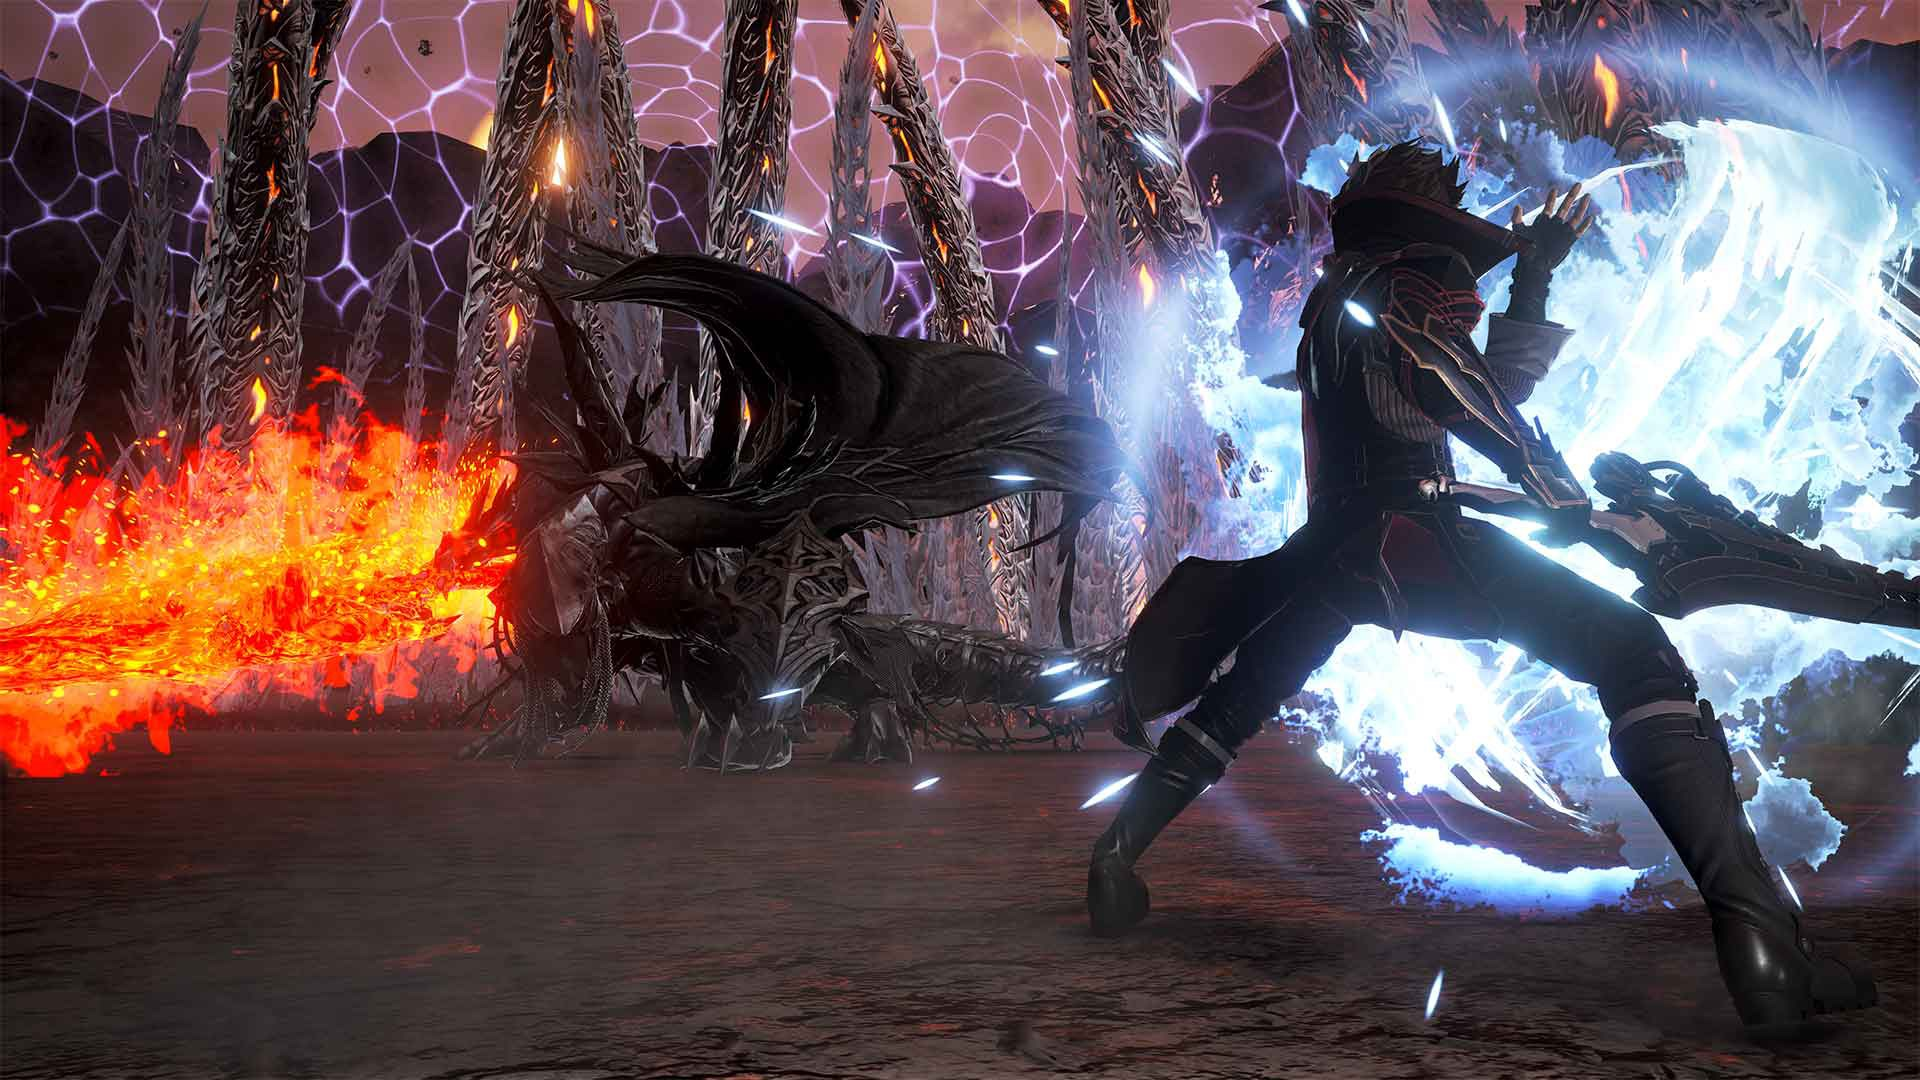 Code Vein, bandai namco, north america, us, australia, japan, asia, europe, release date, gameplay, features, price, buy, ps4, playstation 4, xbox one, xone, update, dlc, Hellfire Knight, expansion